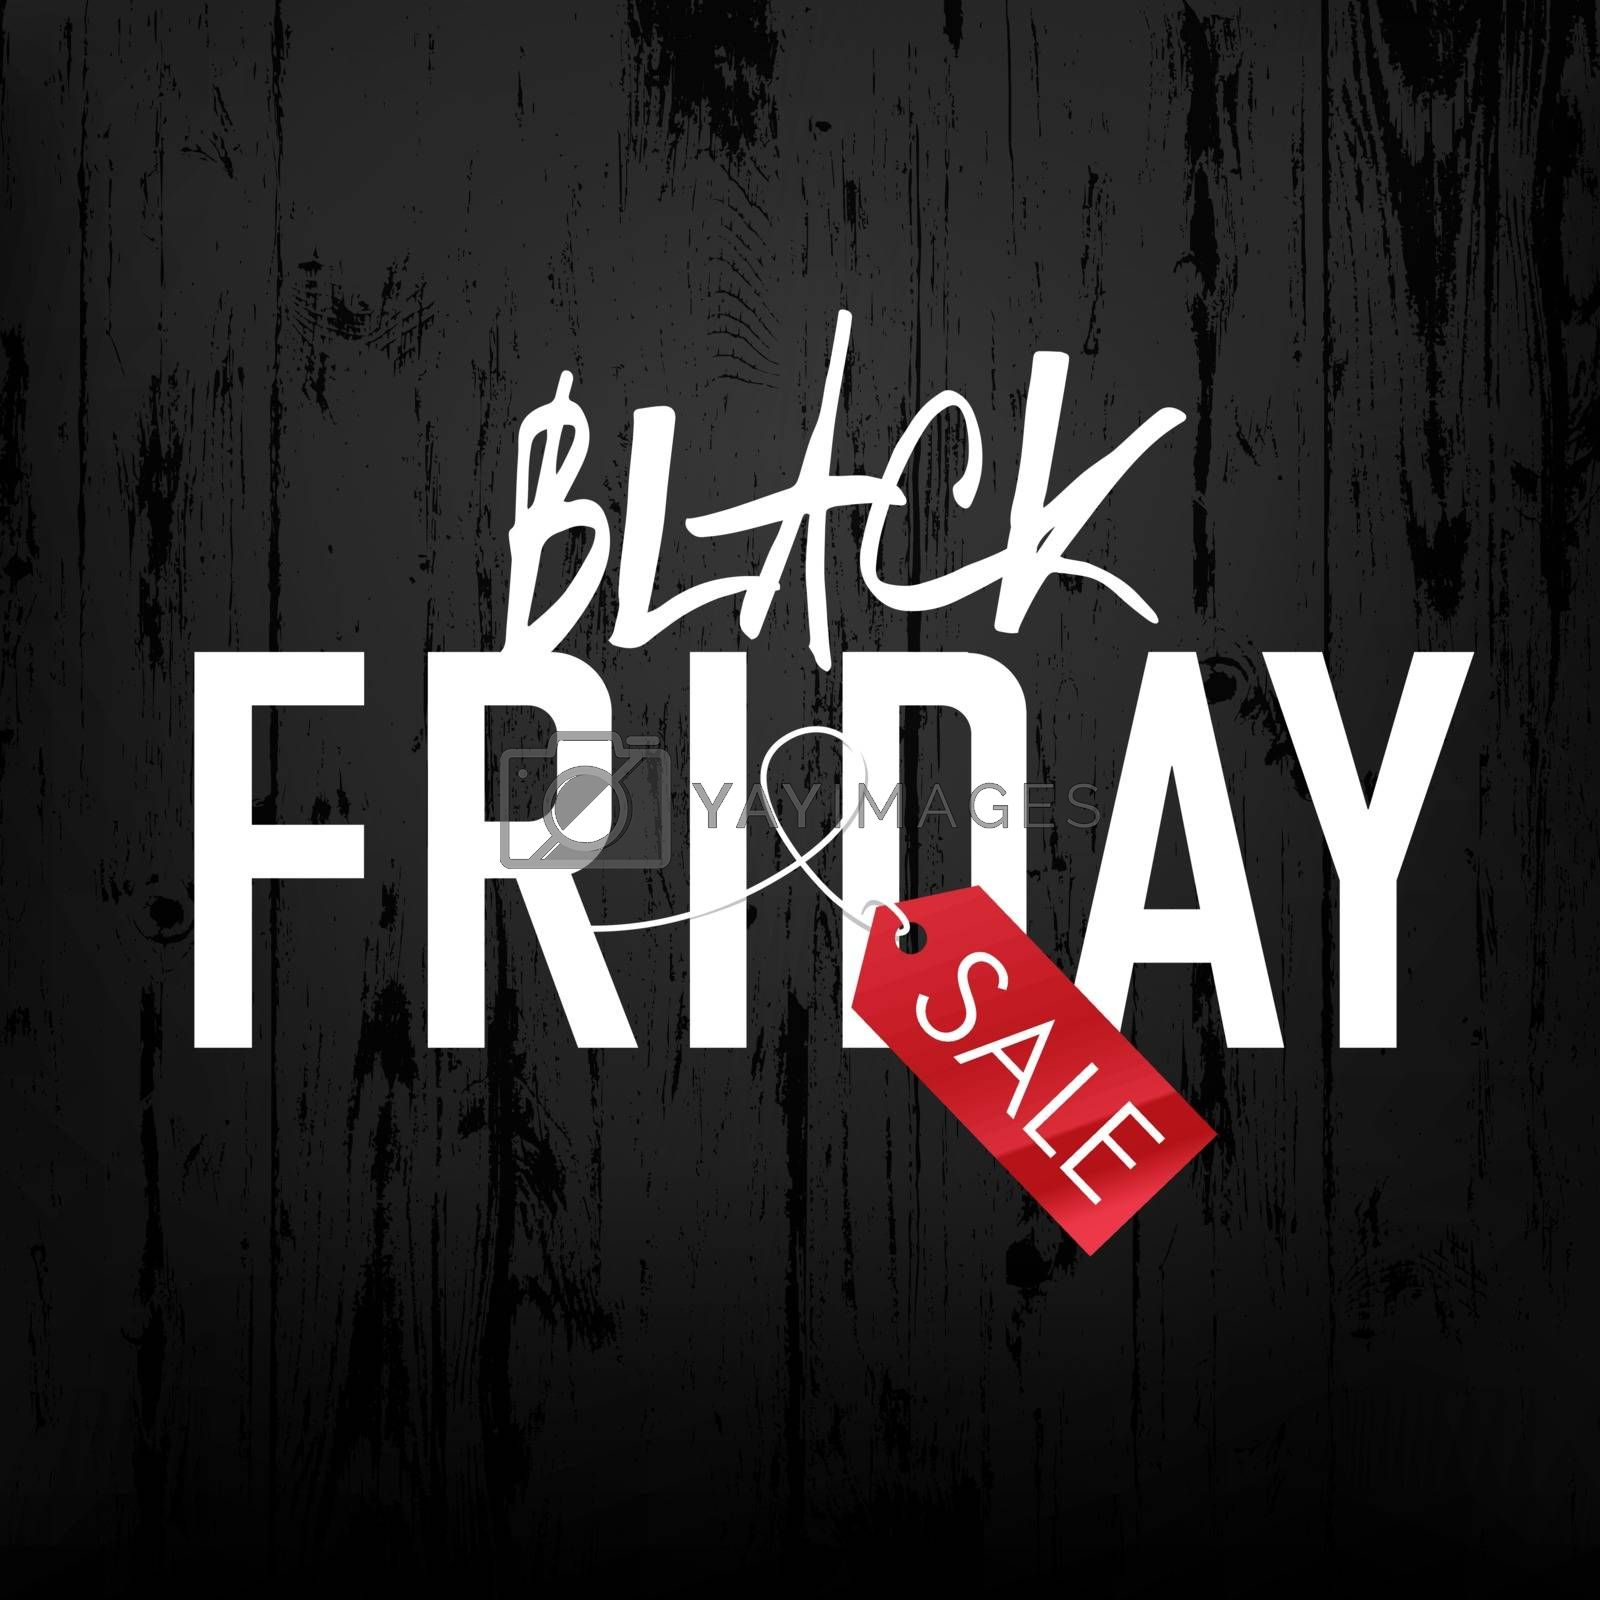 Black Friday sales Advertising Poster on Black Wooden background